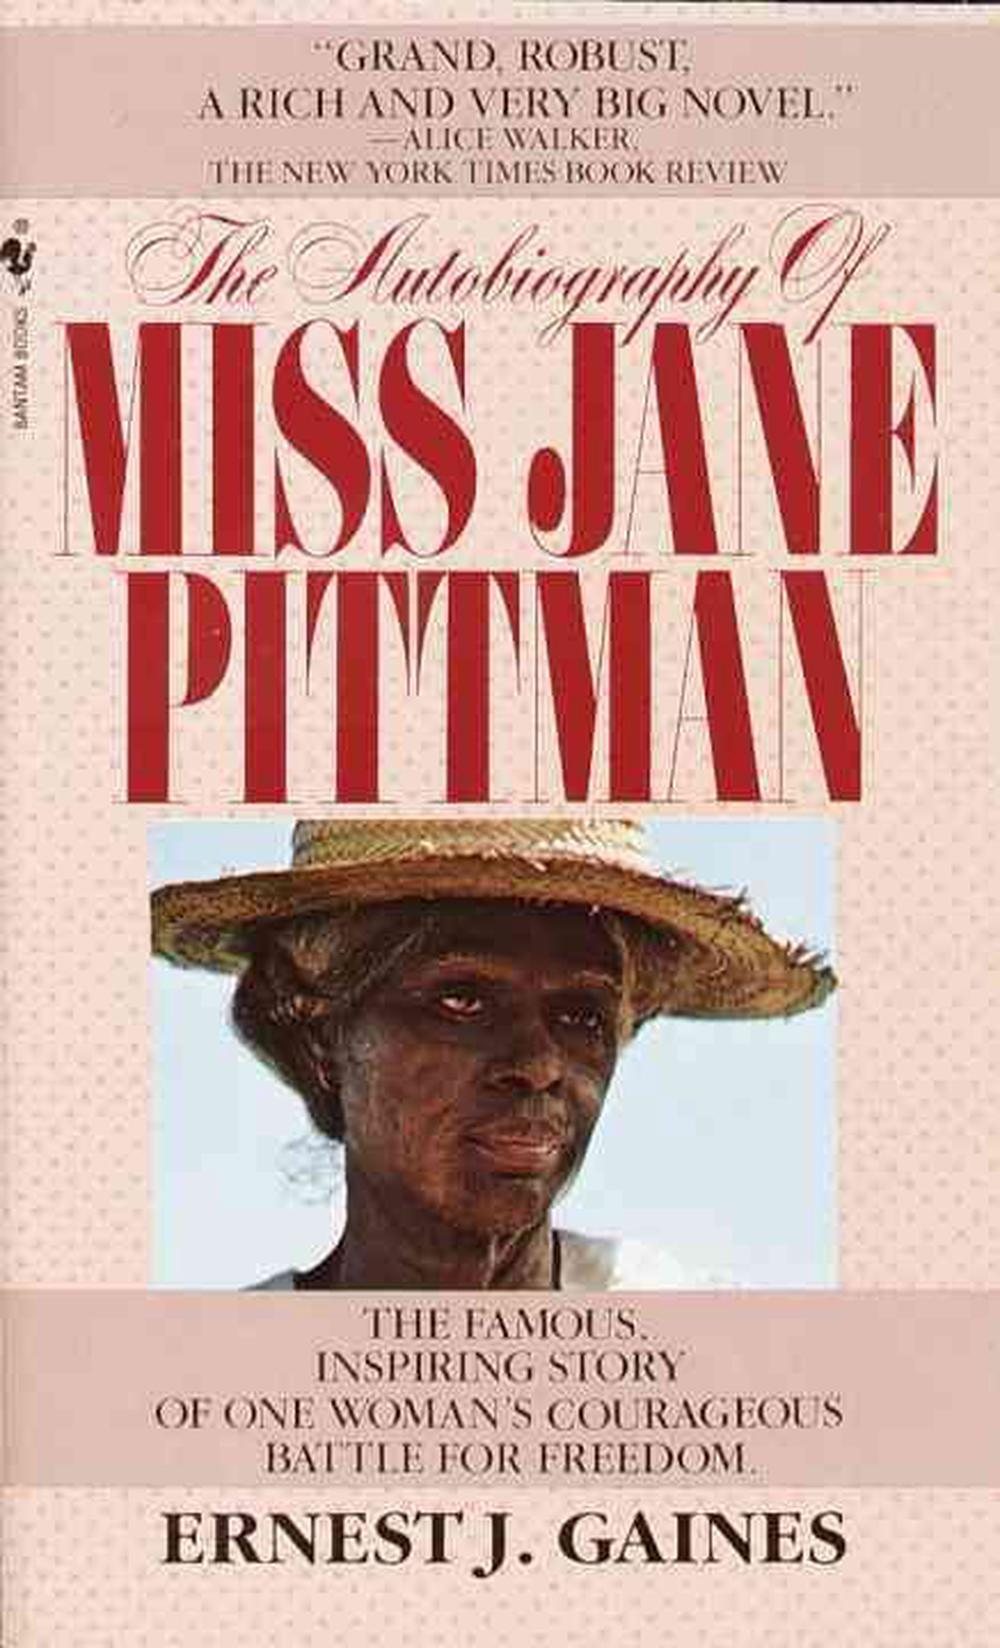 an introduction to the autobiography of miss jane pittman and the concept of civil rights movement i With the exception of the autobiography of miss jane pittman  pioneer in the civil rights movement in expanding the concept of what makes up american.